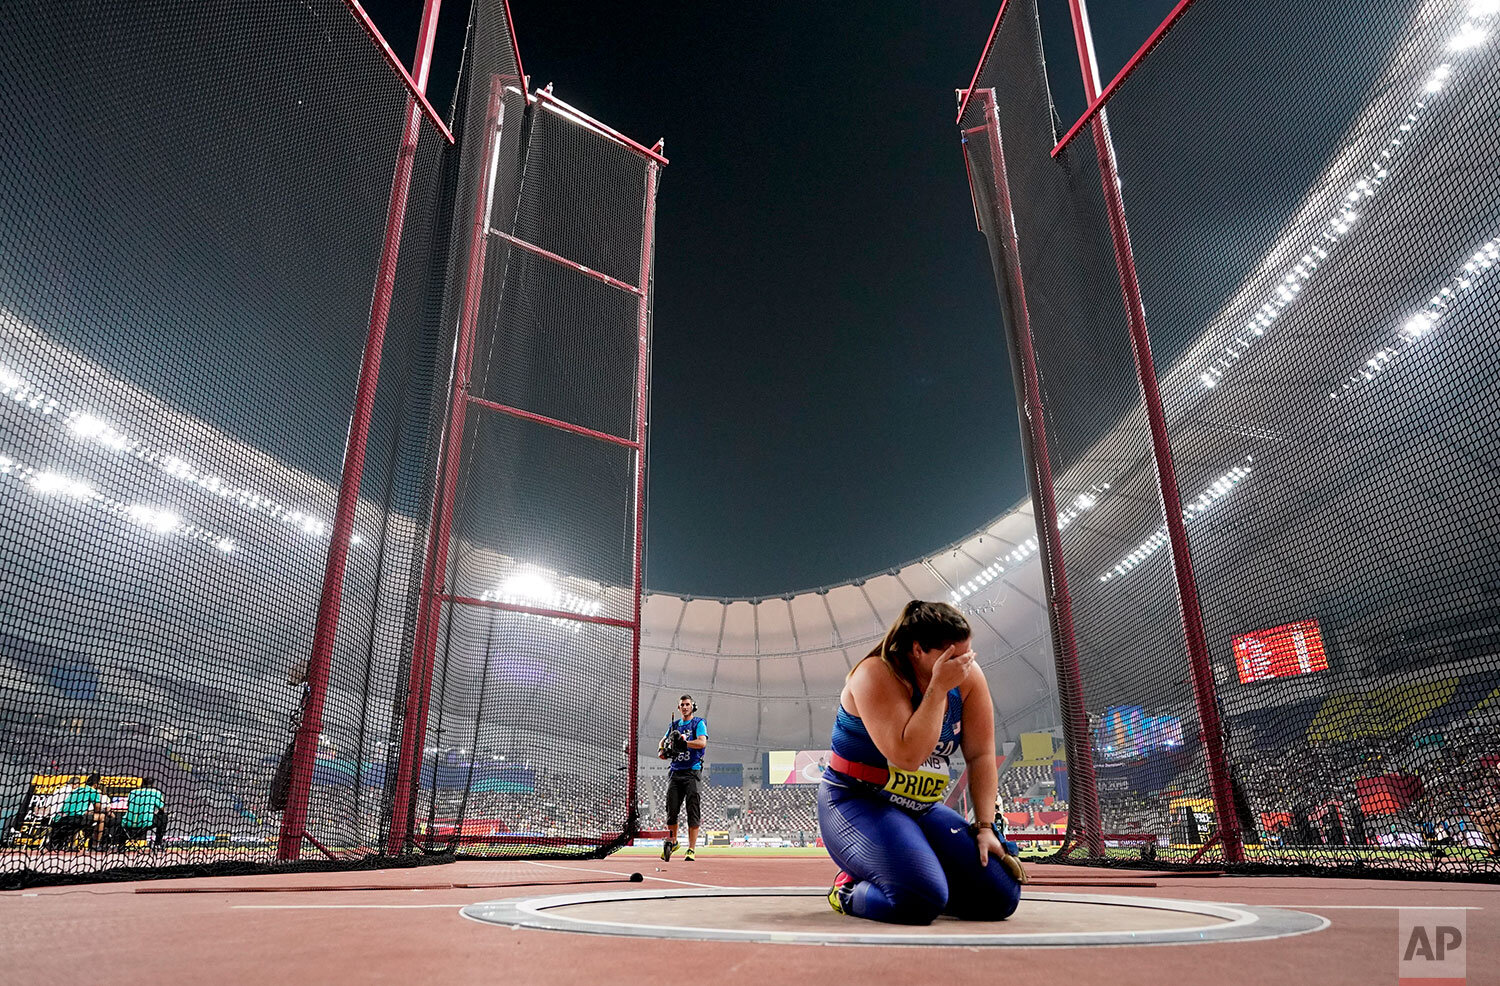 Deanna Price, of the United States, celebrates winning the gold medal for the women's hammer throw at the World Athletics Championships in Doha, Qatar, Saturday, Sept. 28, 2019. (AP Photo/David J. Phillip)